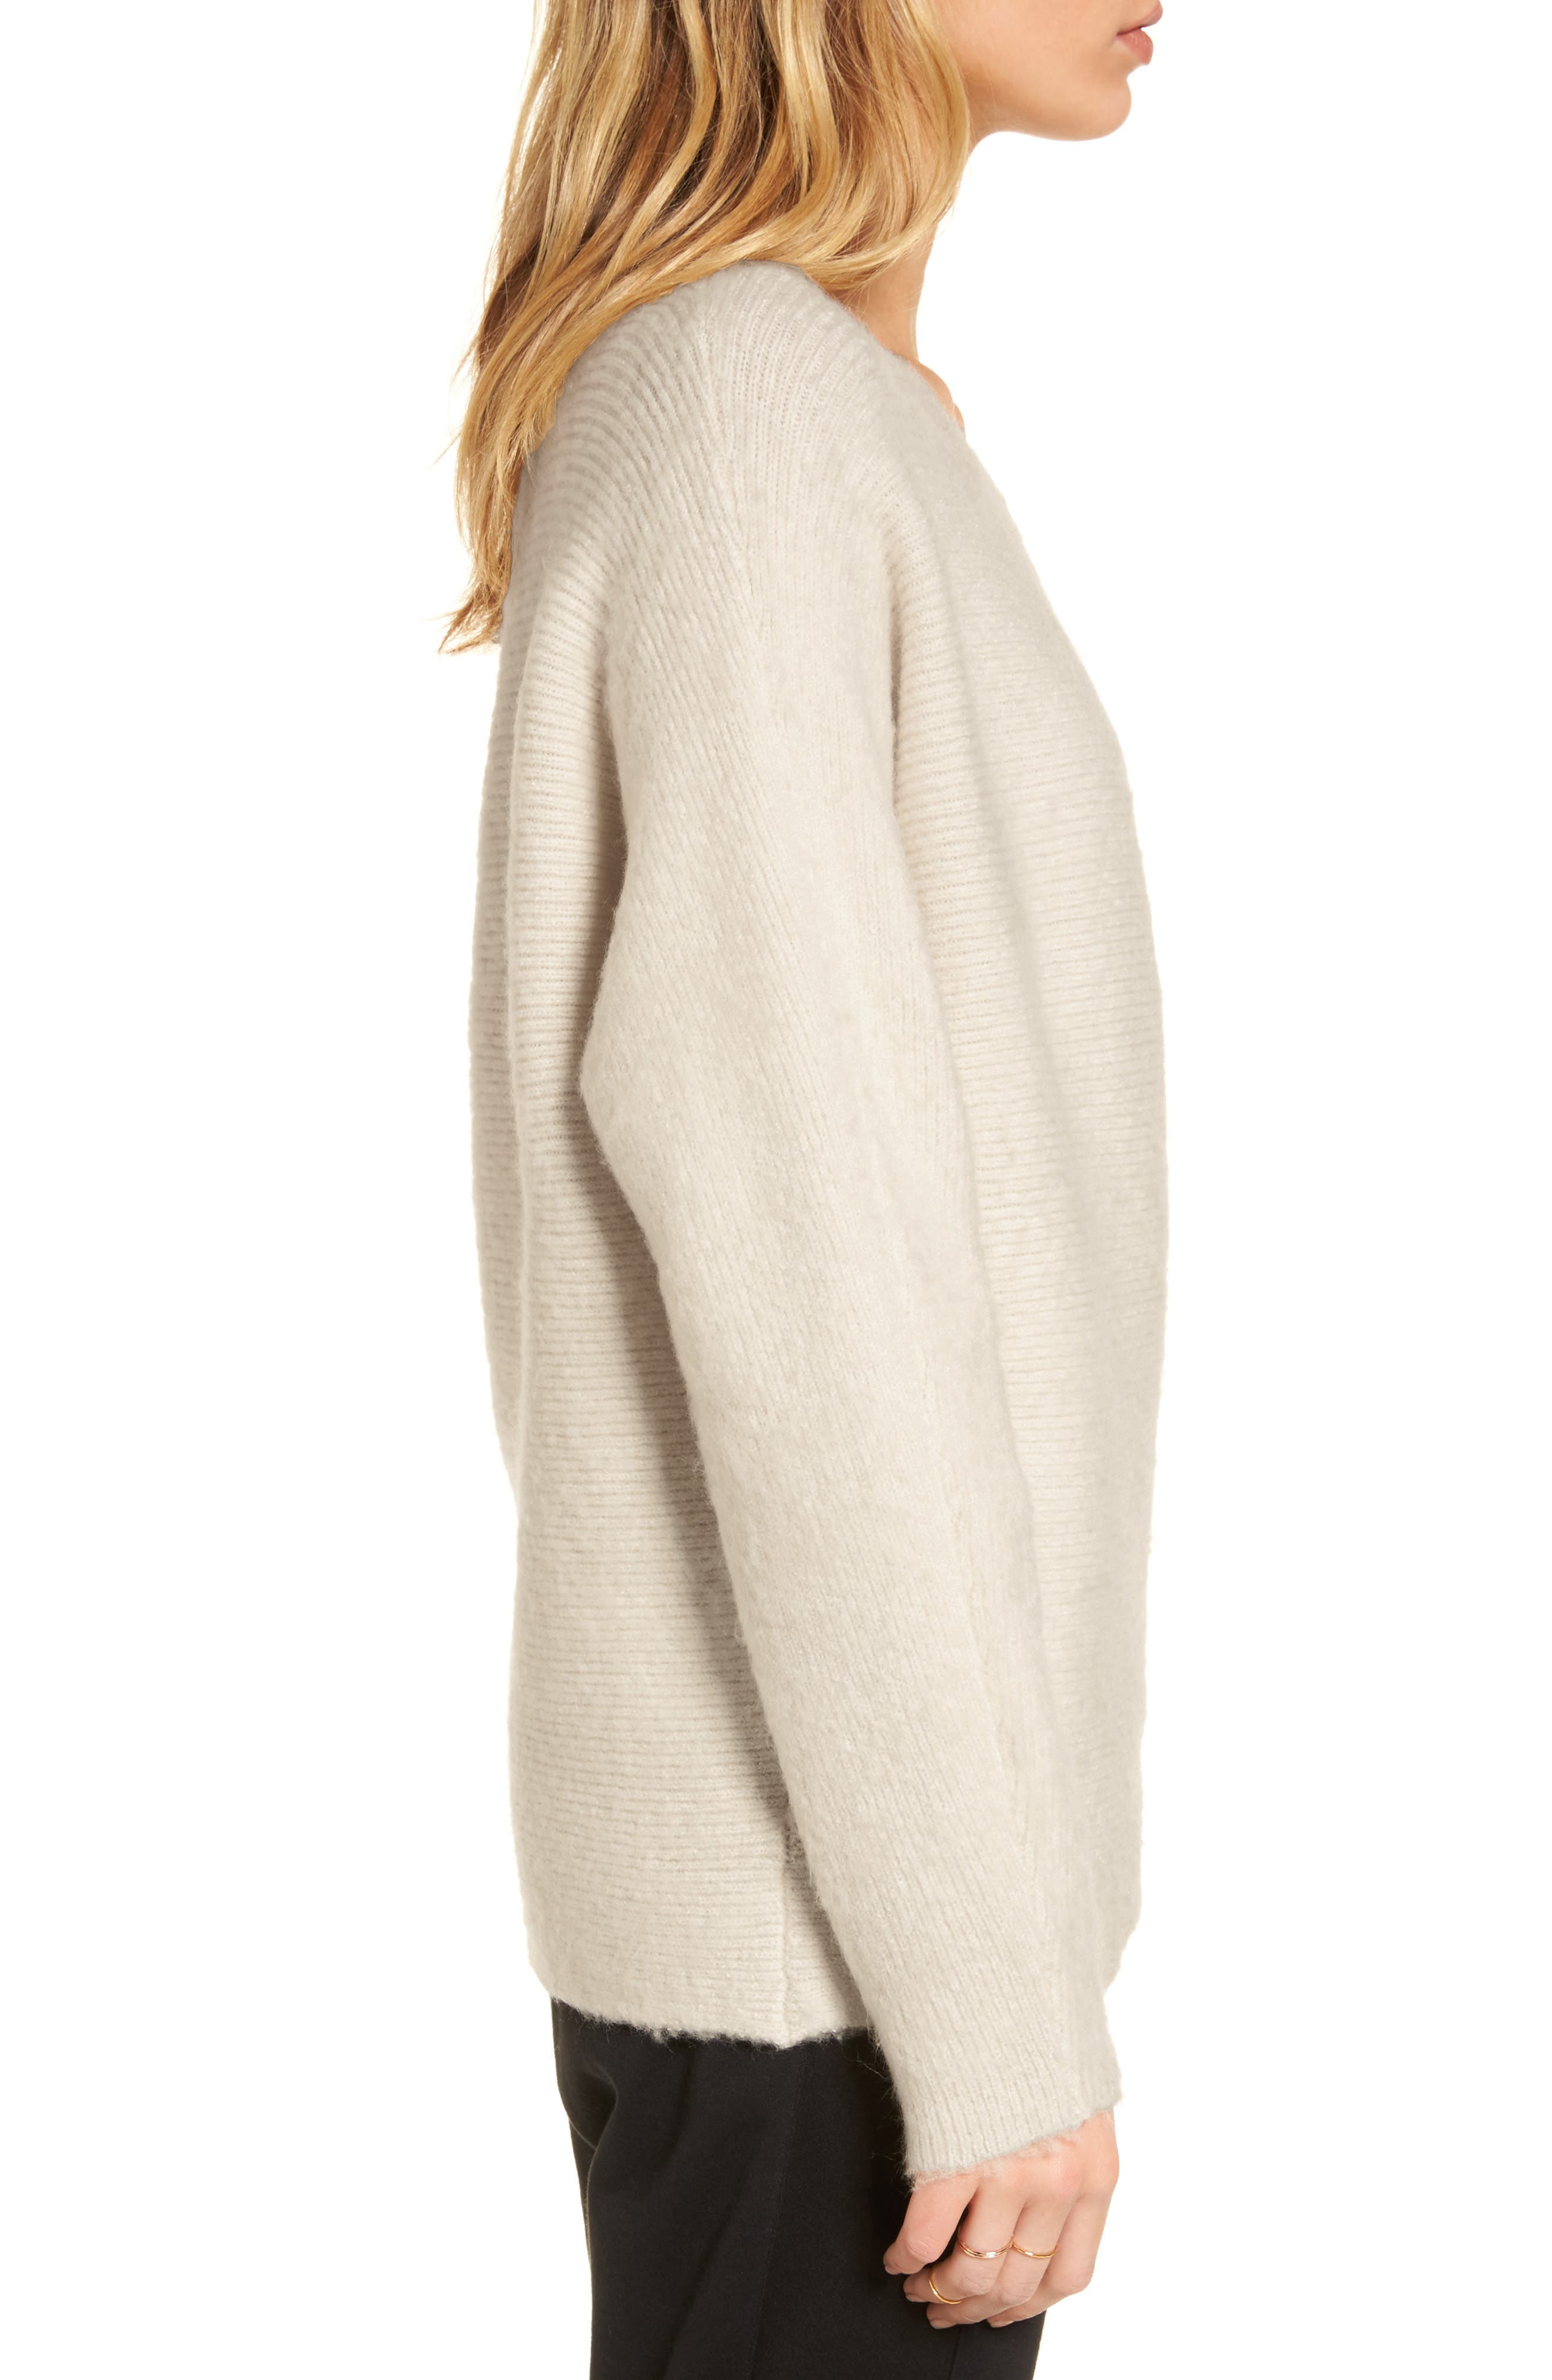 TREASURE & BOND,                             One-Shoulder Ribbed Sweater,                             Alternate thumbnail 3, color,                             BEIGE OATMEAL LIGHT HEATHER